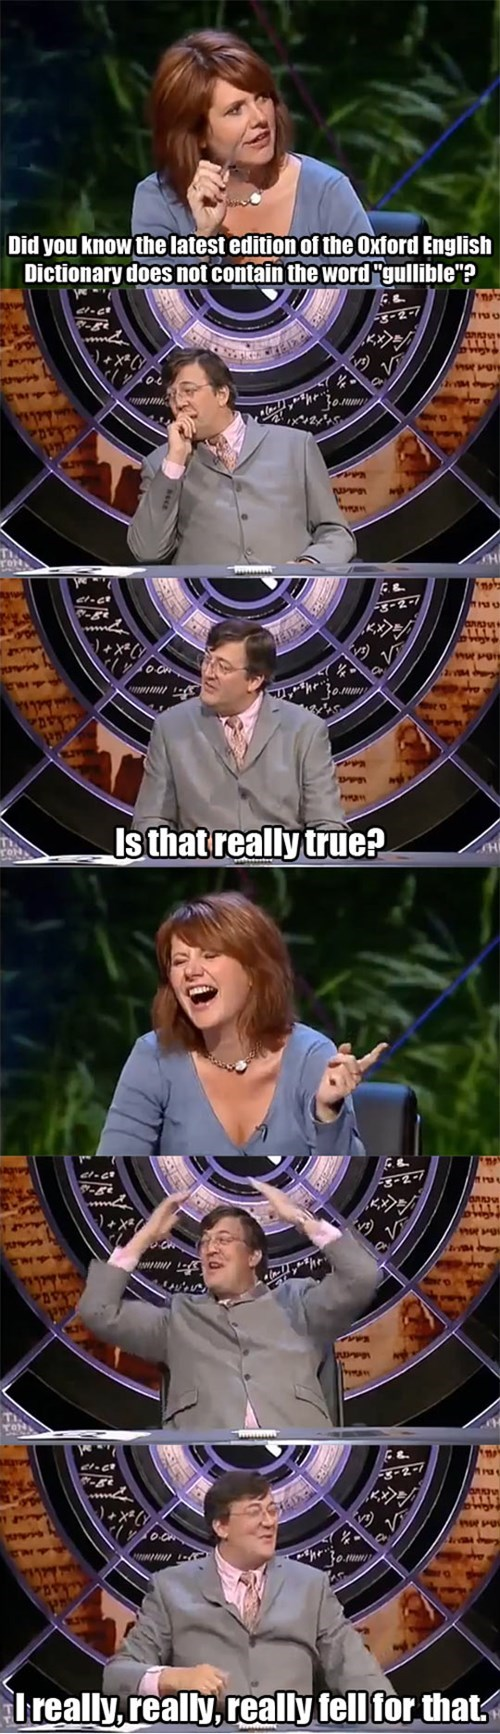 Stephen Fry,gullible